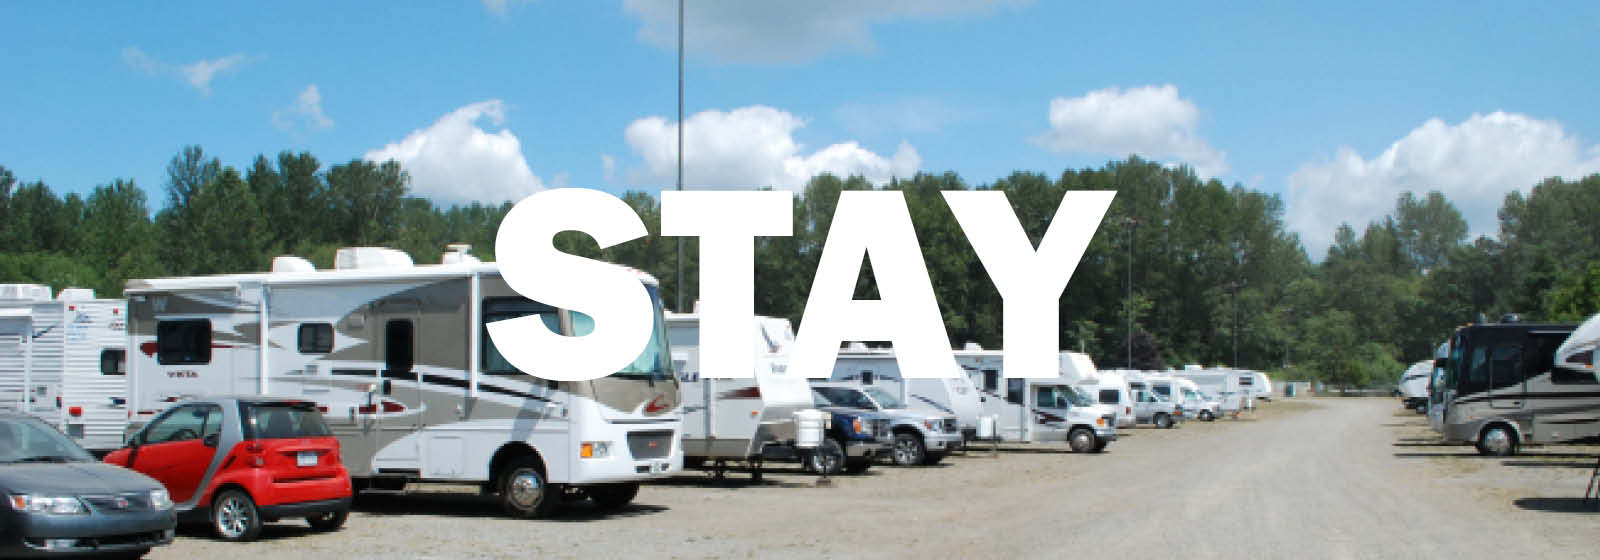 RV Park | Evergreen State Fairgrounds, WA - Official Website